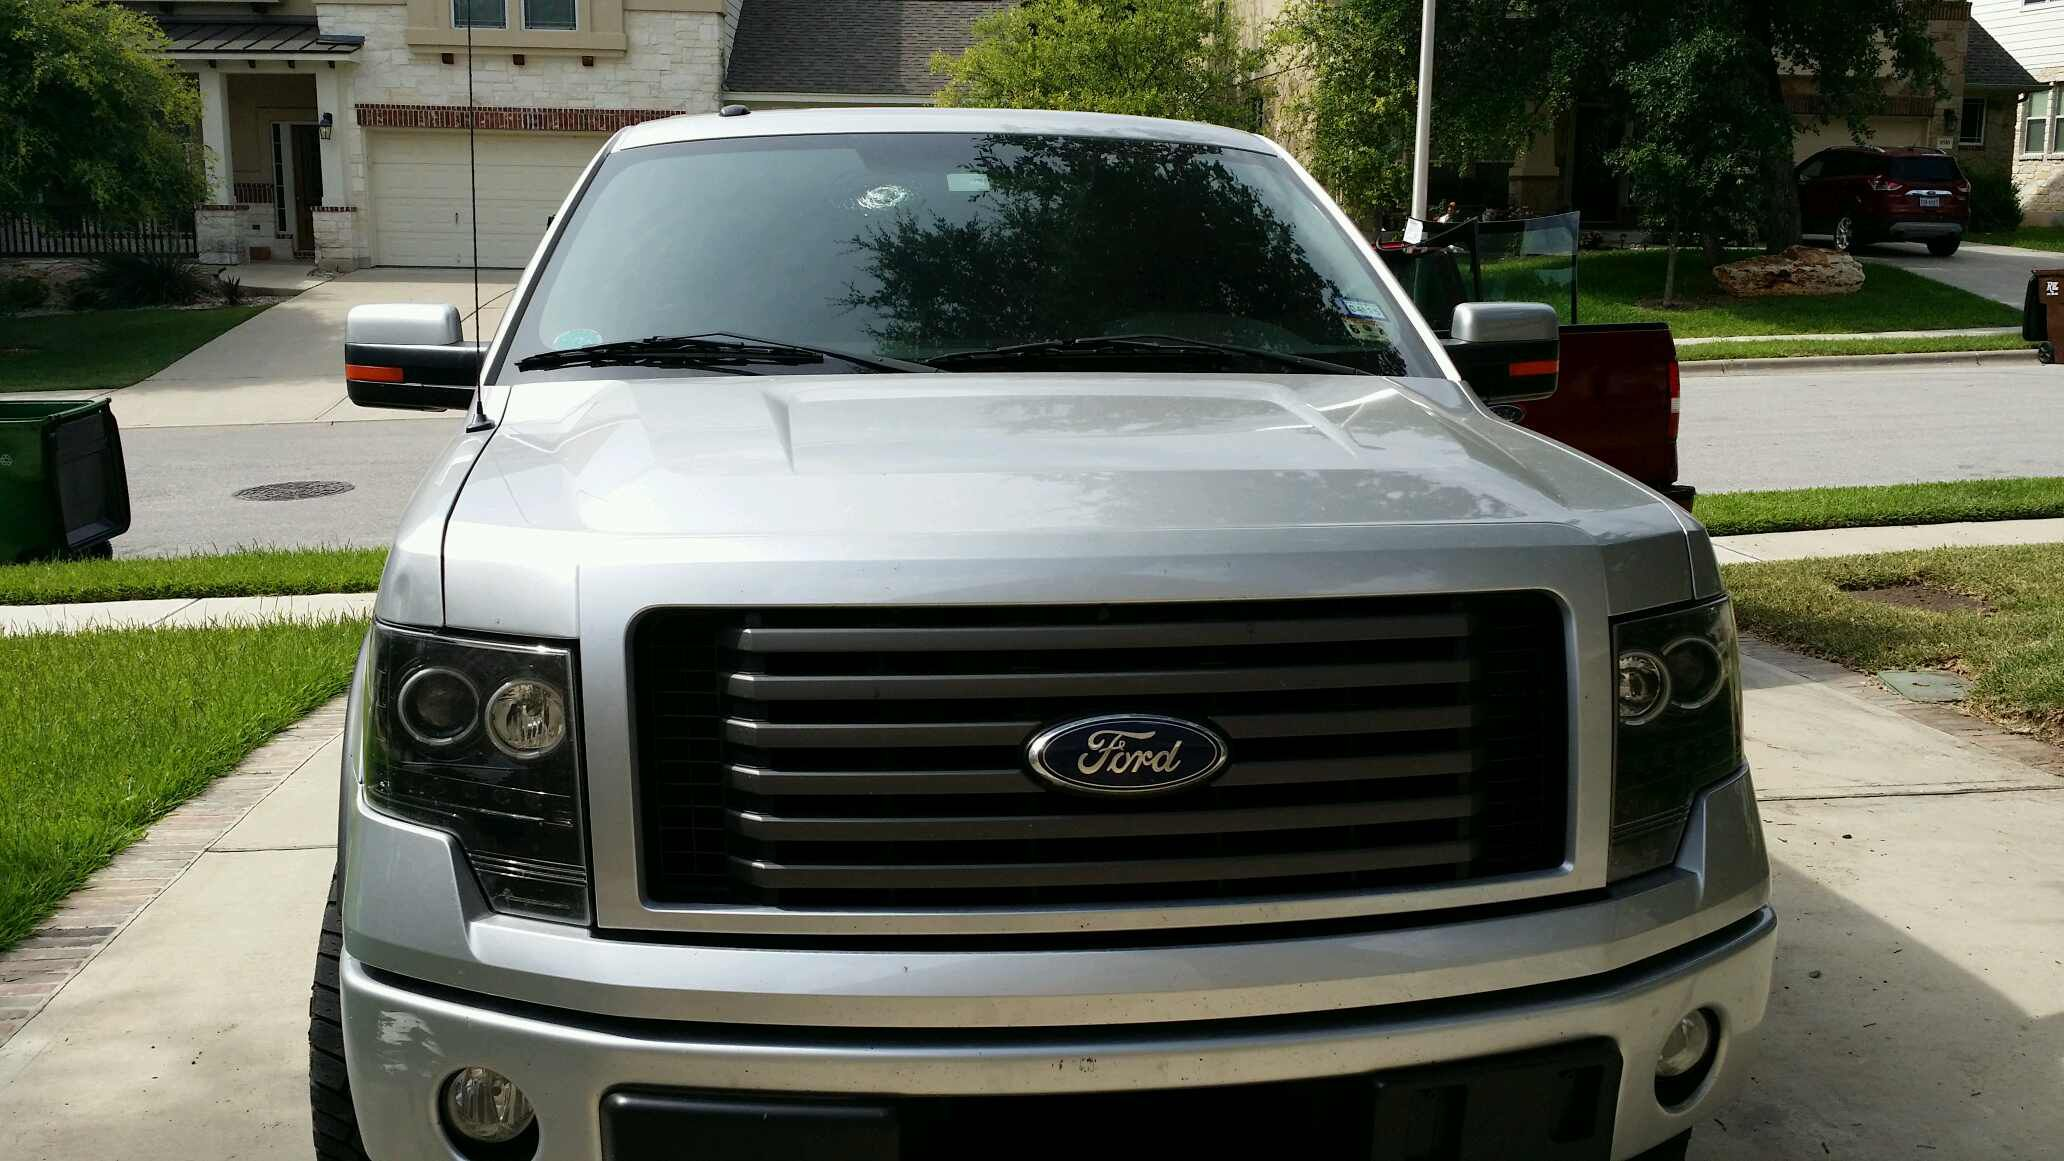 Ford ranger windshield replacement cost